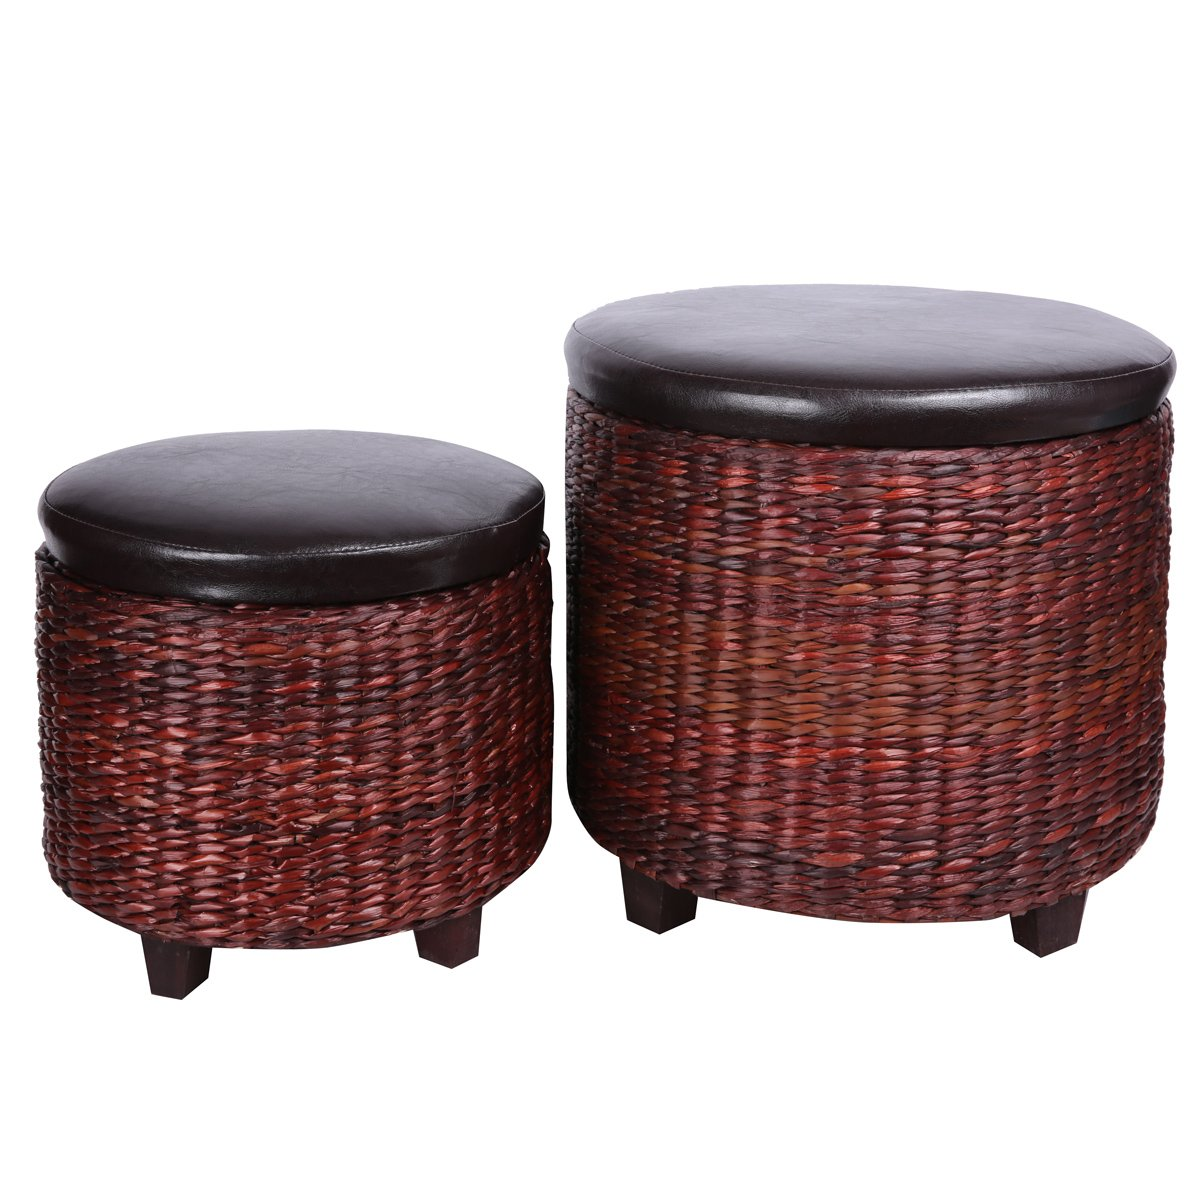 Eshow Handmade Home Ottomans Large Basket Storage Container Bamboo Bench Foot Seating 2 Pack Brown Brown01